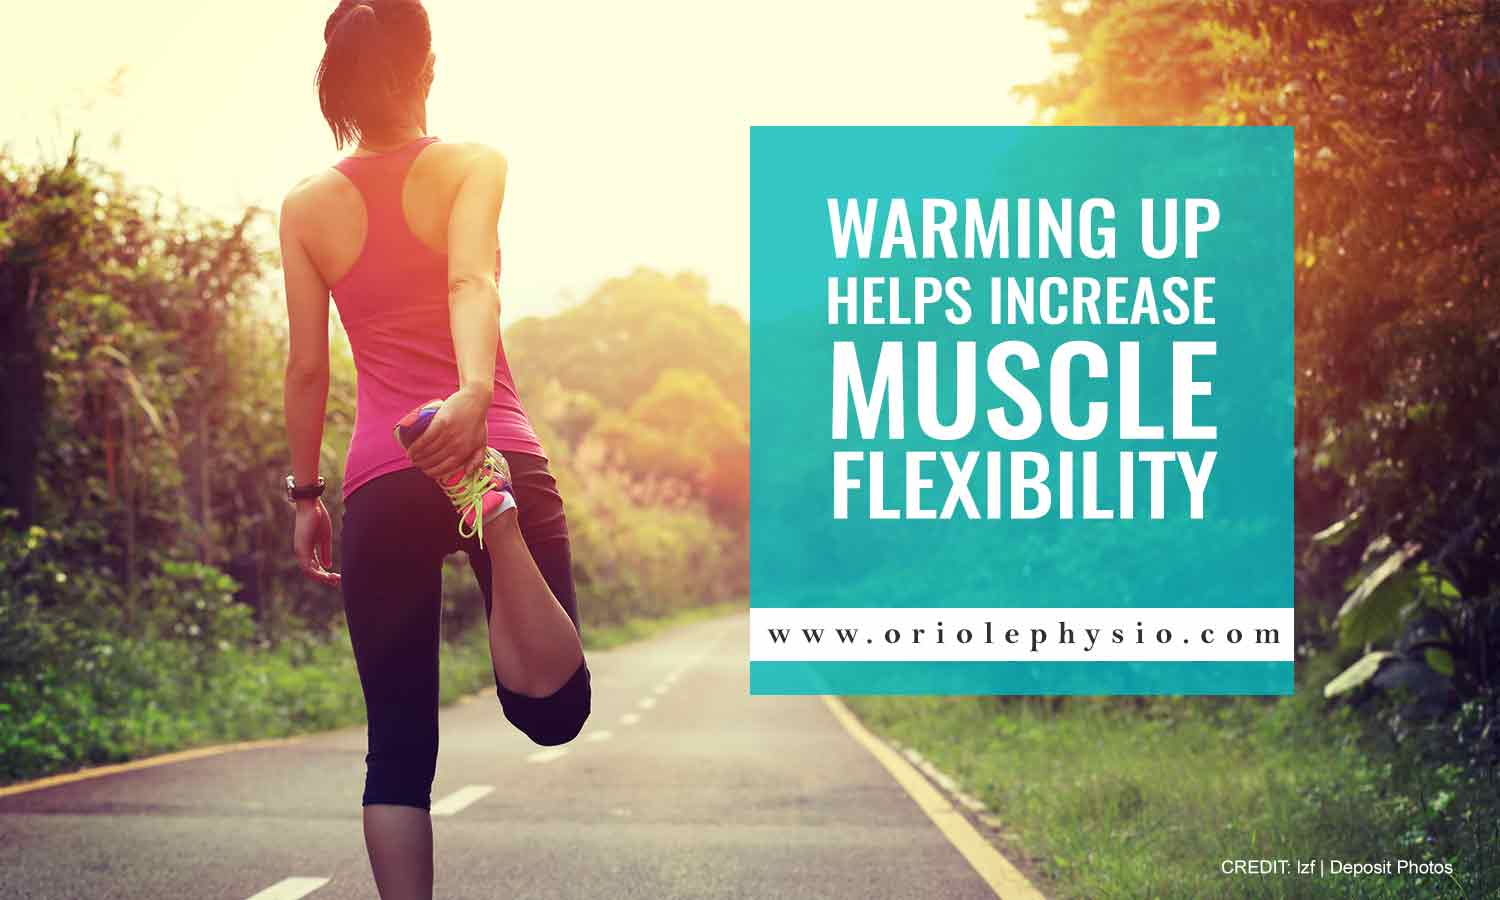 Warming up helps increase muscle flexibility